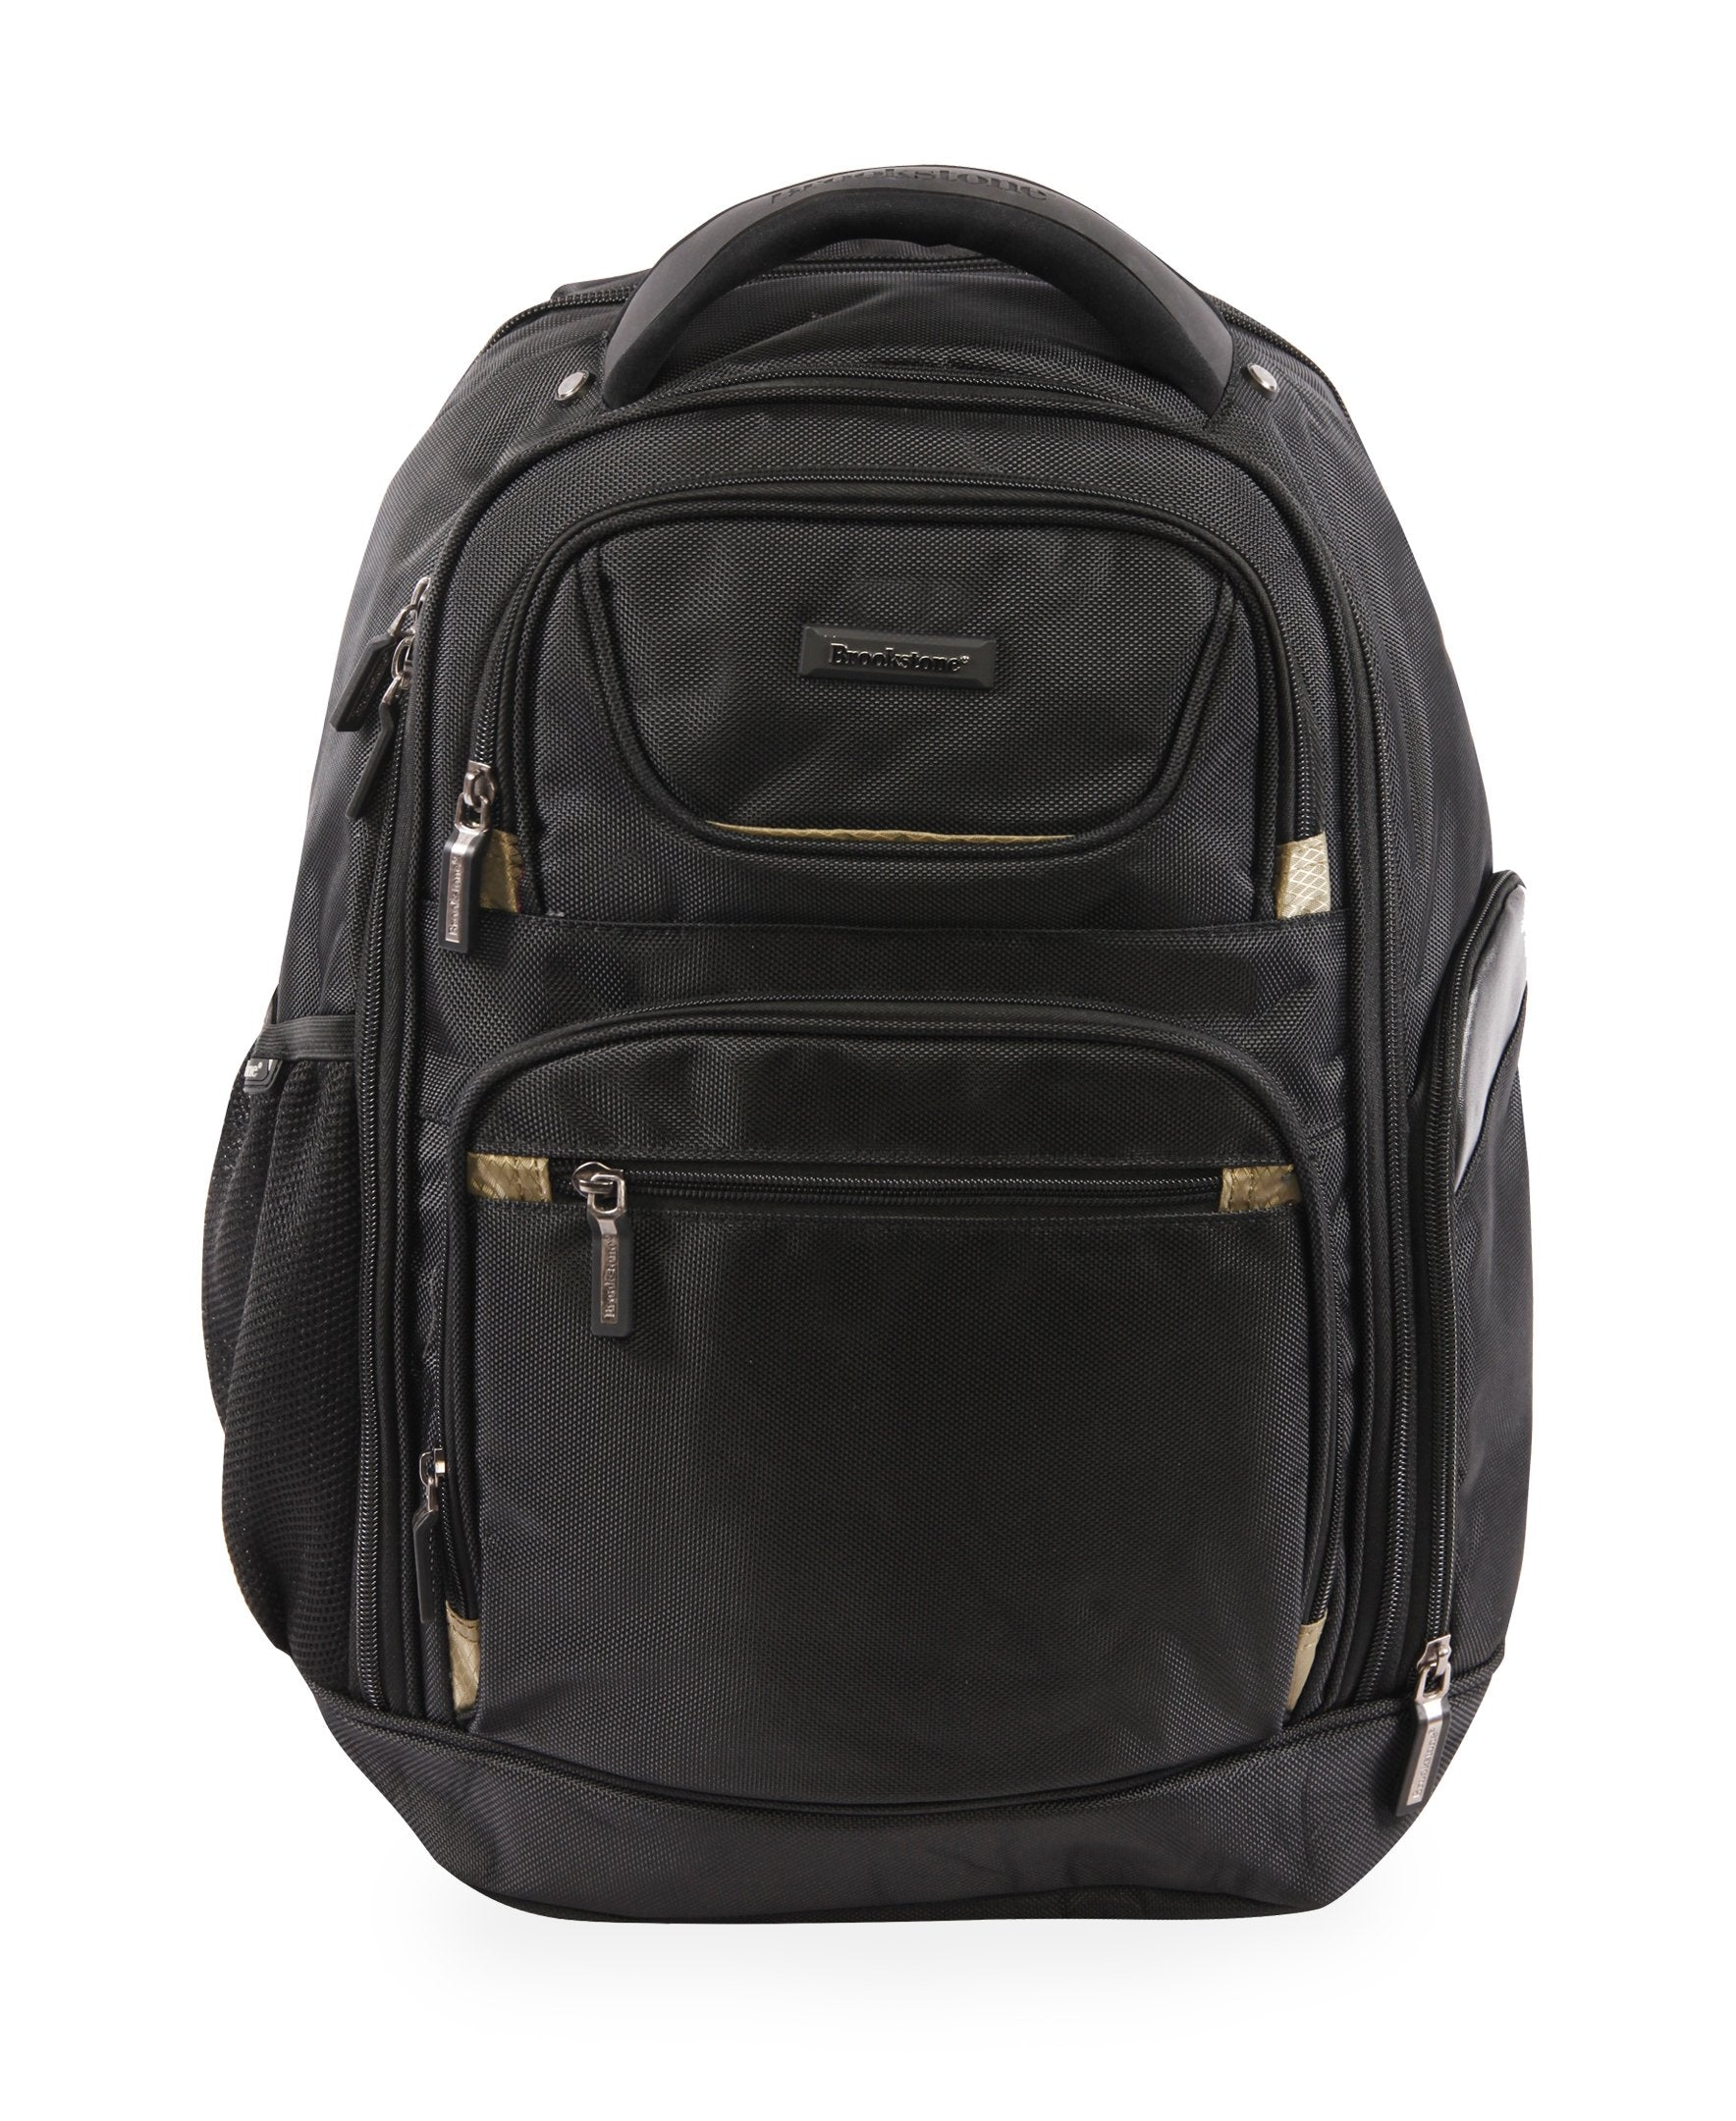 American Traveler Brookstone Hayes Laptop Backpack in Black, Size 19 Inch